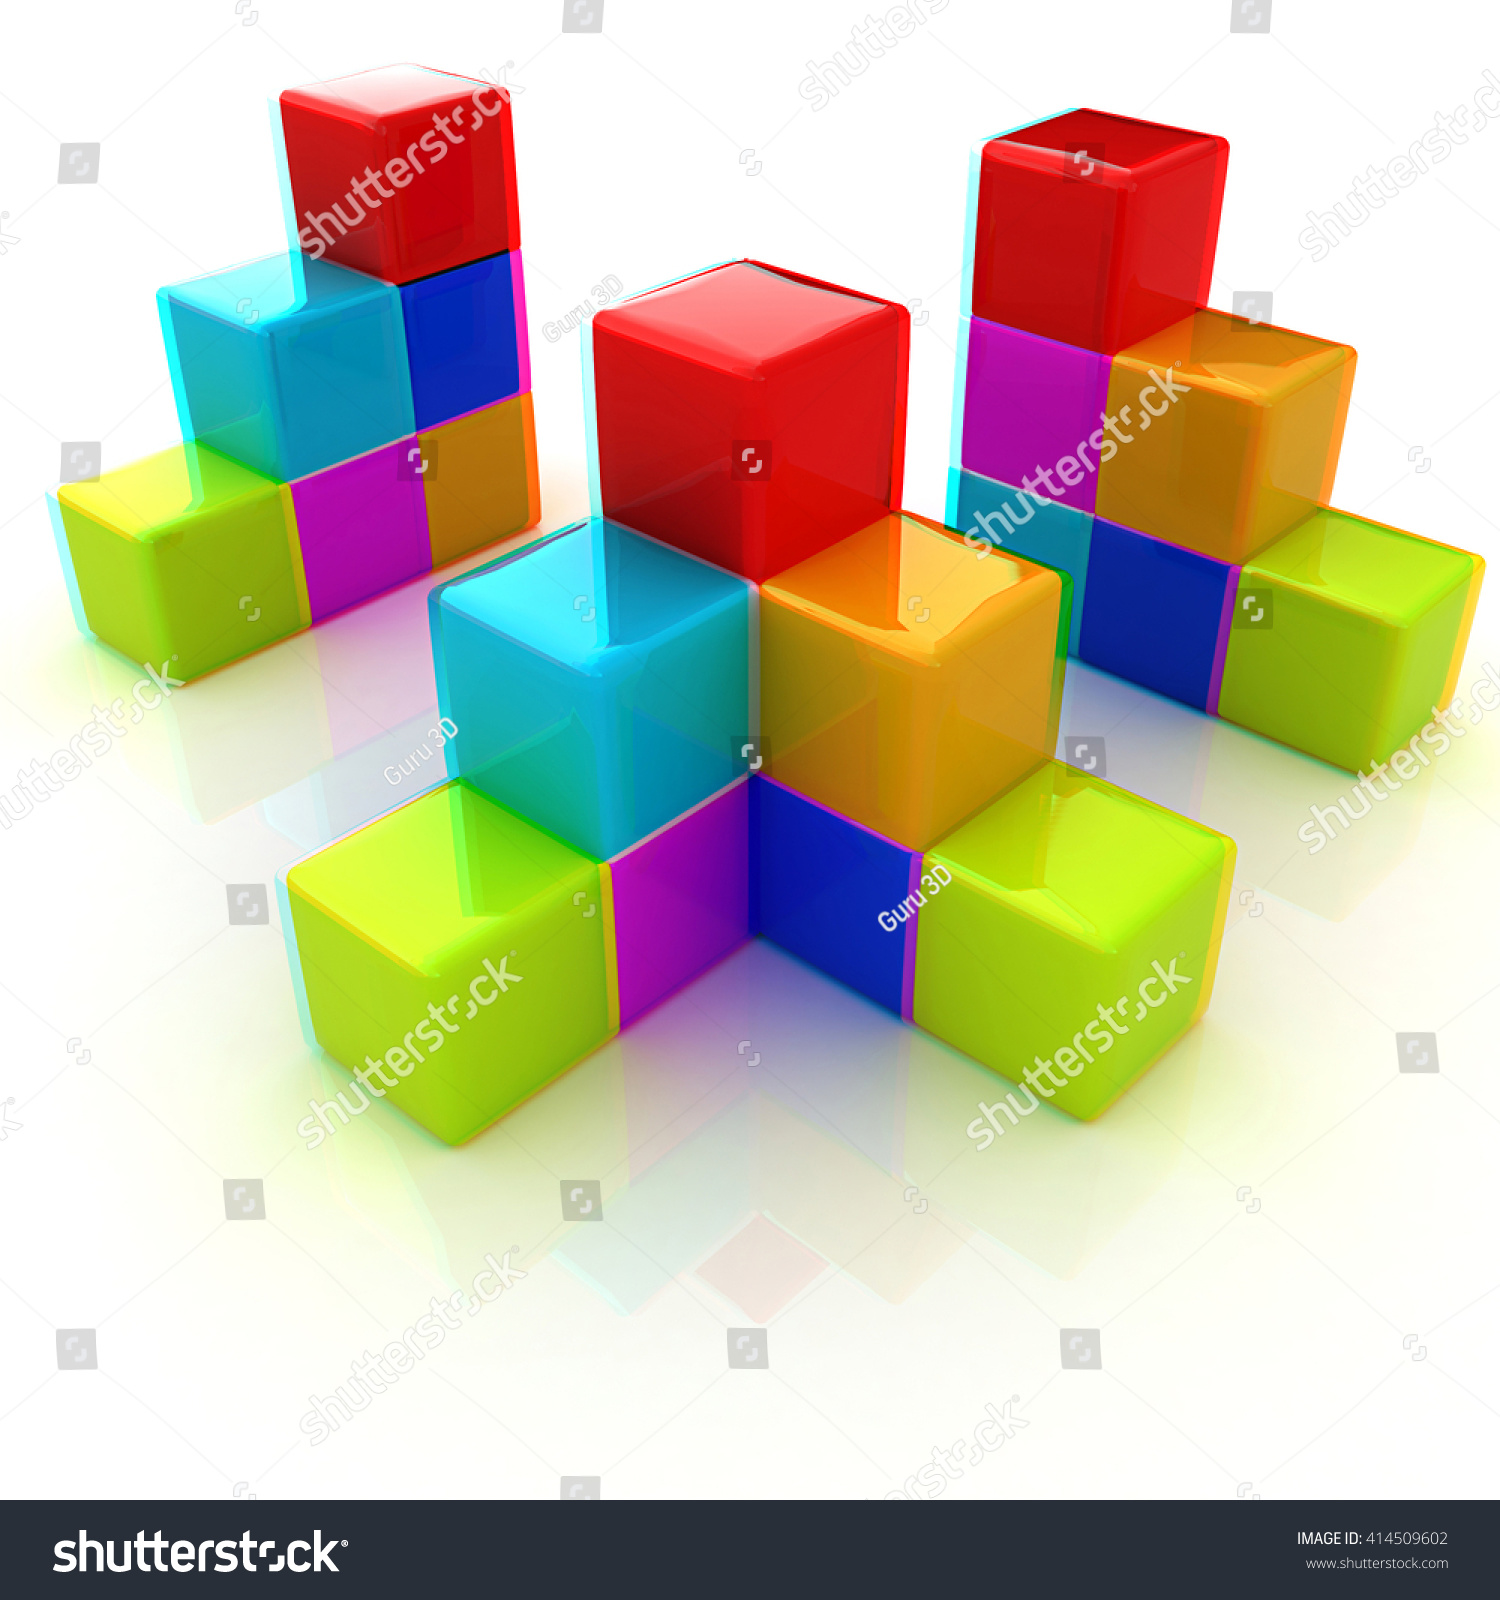 colorful block diagram. 3D illustration. Anaglyph. View with red/cyan  glasses to